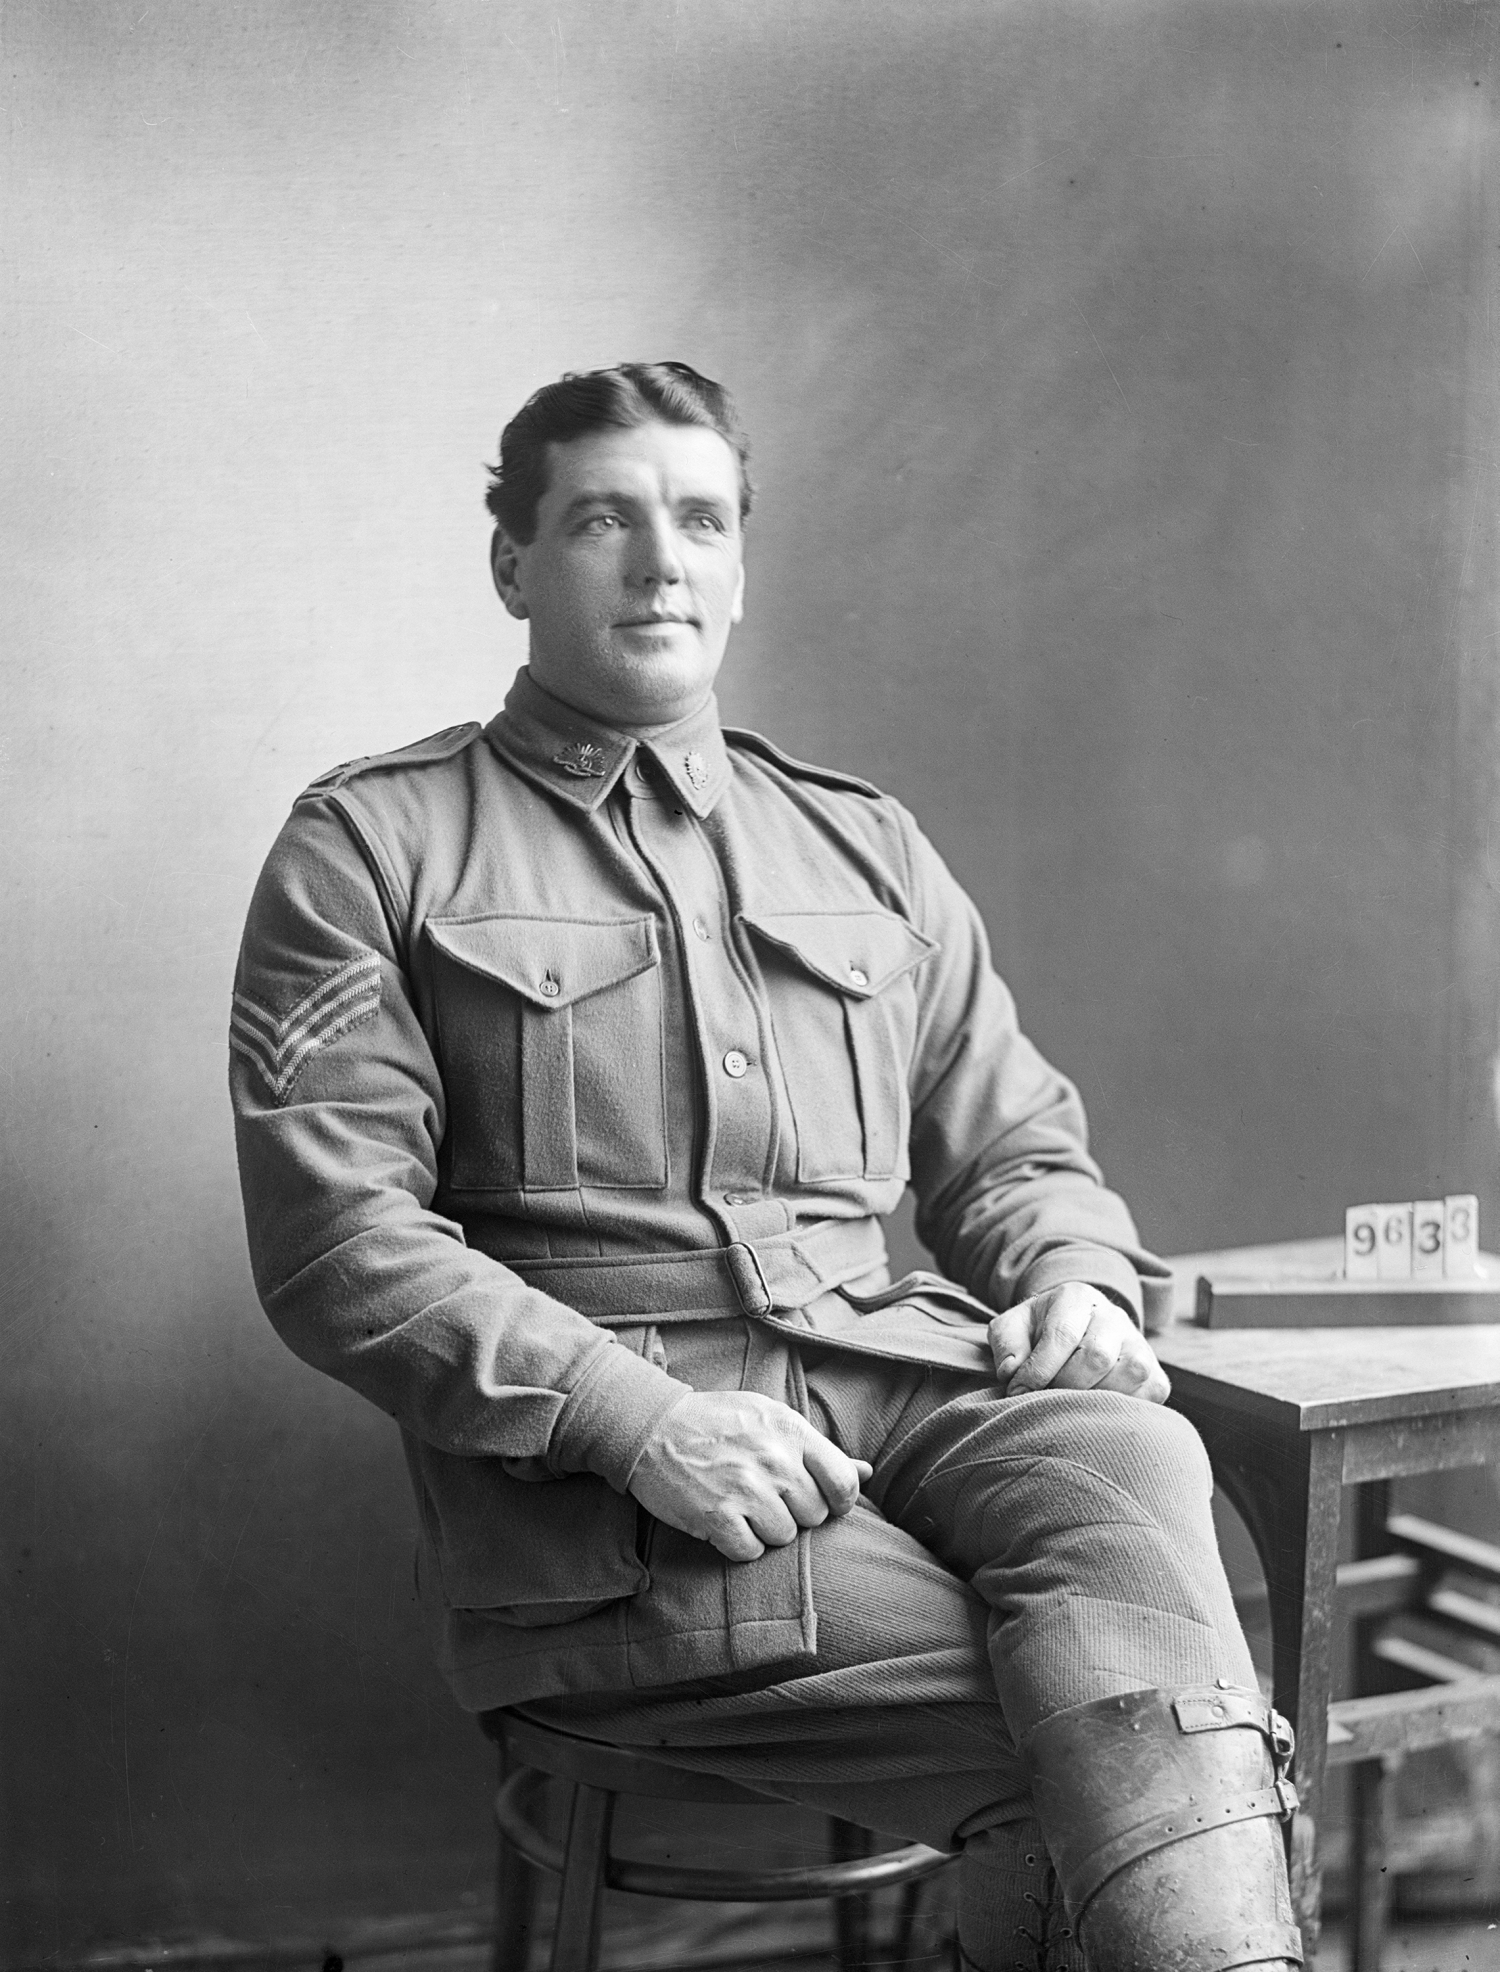 Black and white illustration of a seated man in uniform.